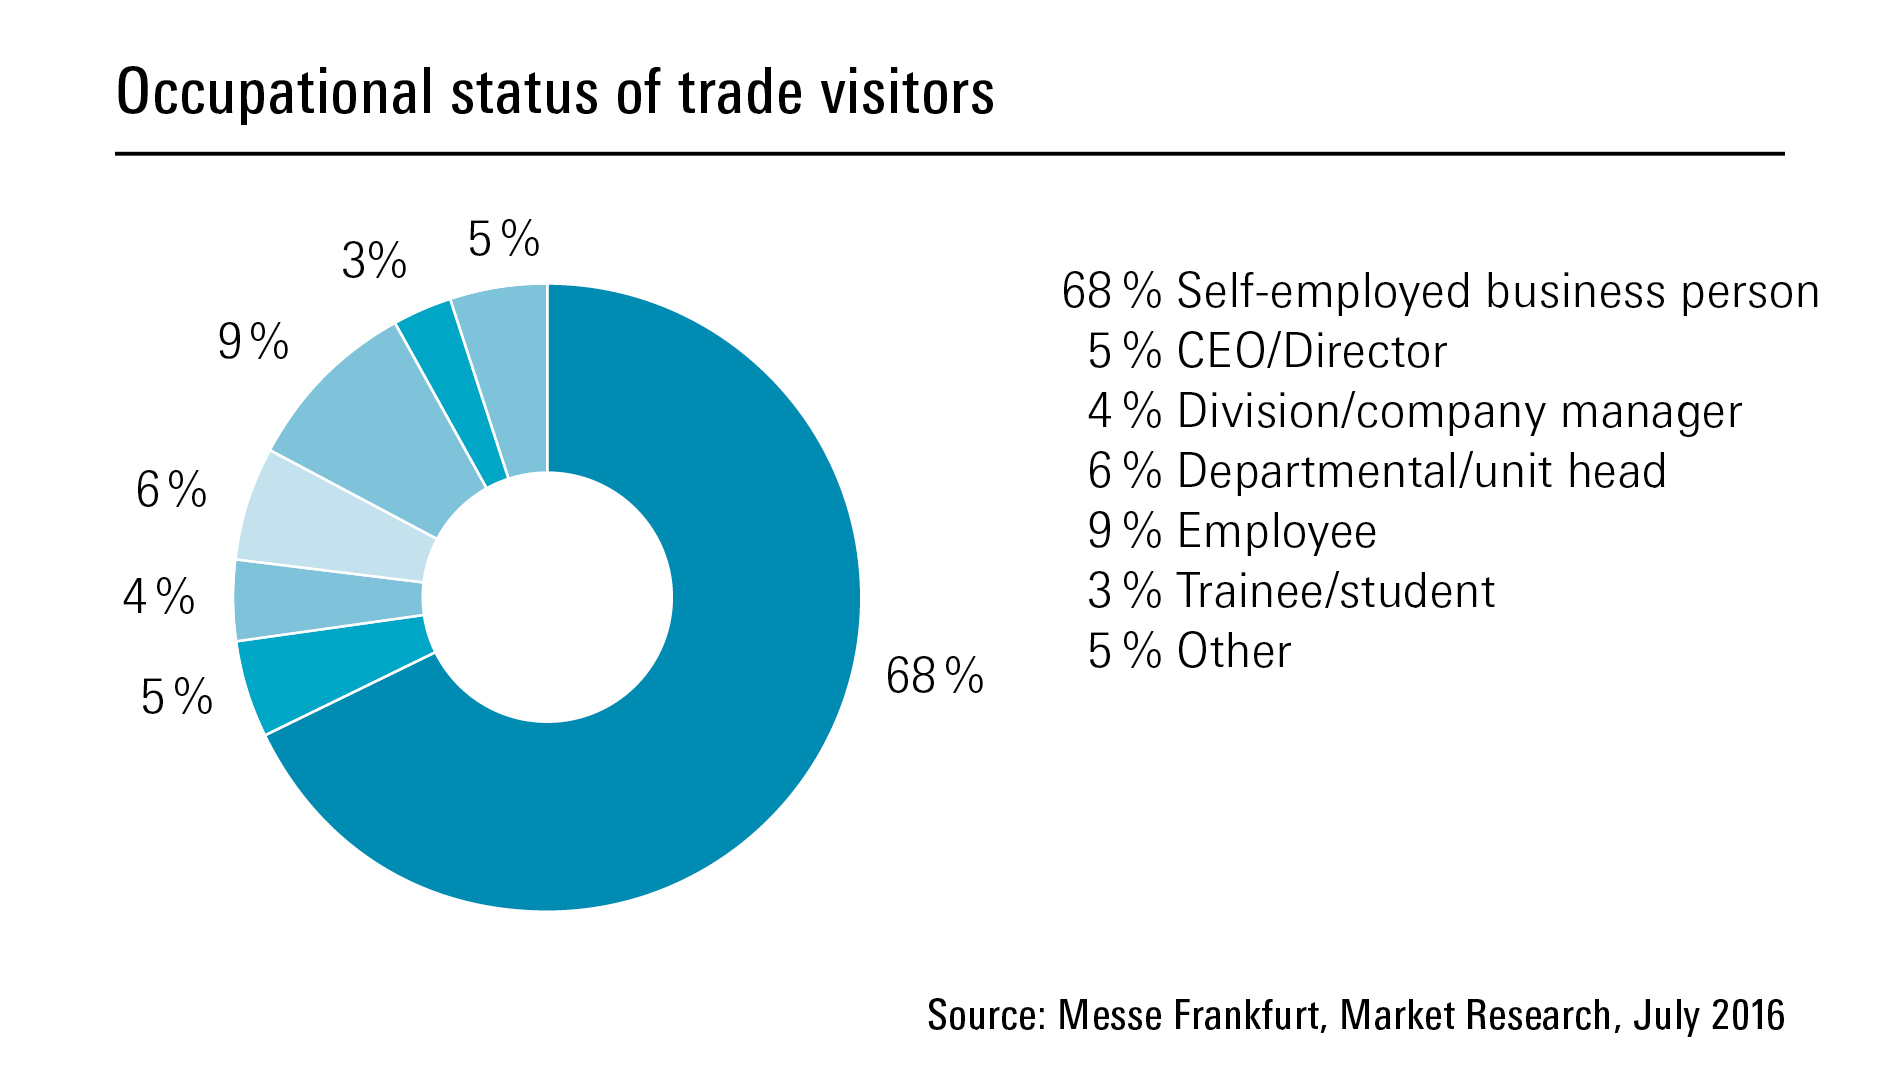 Occupational status of trade visitors